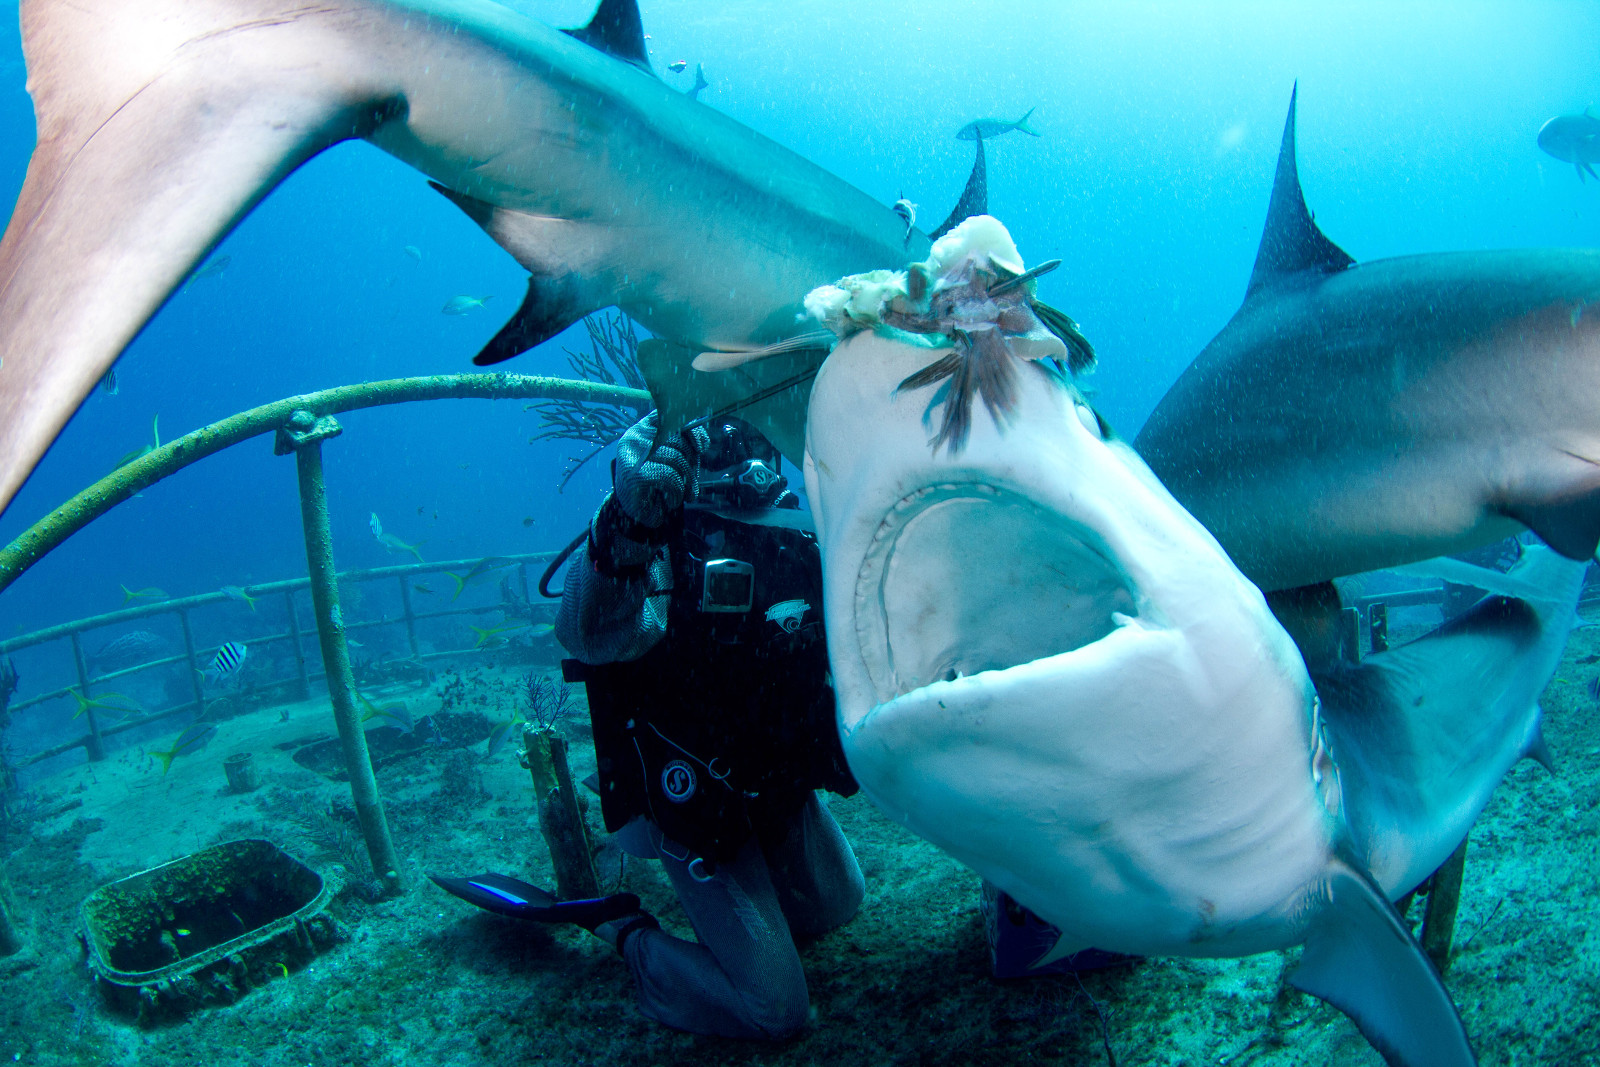 Should You Take the Bait? The Goods and the Bads of Shark Ecotourism